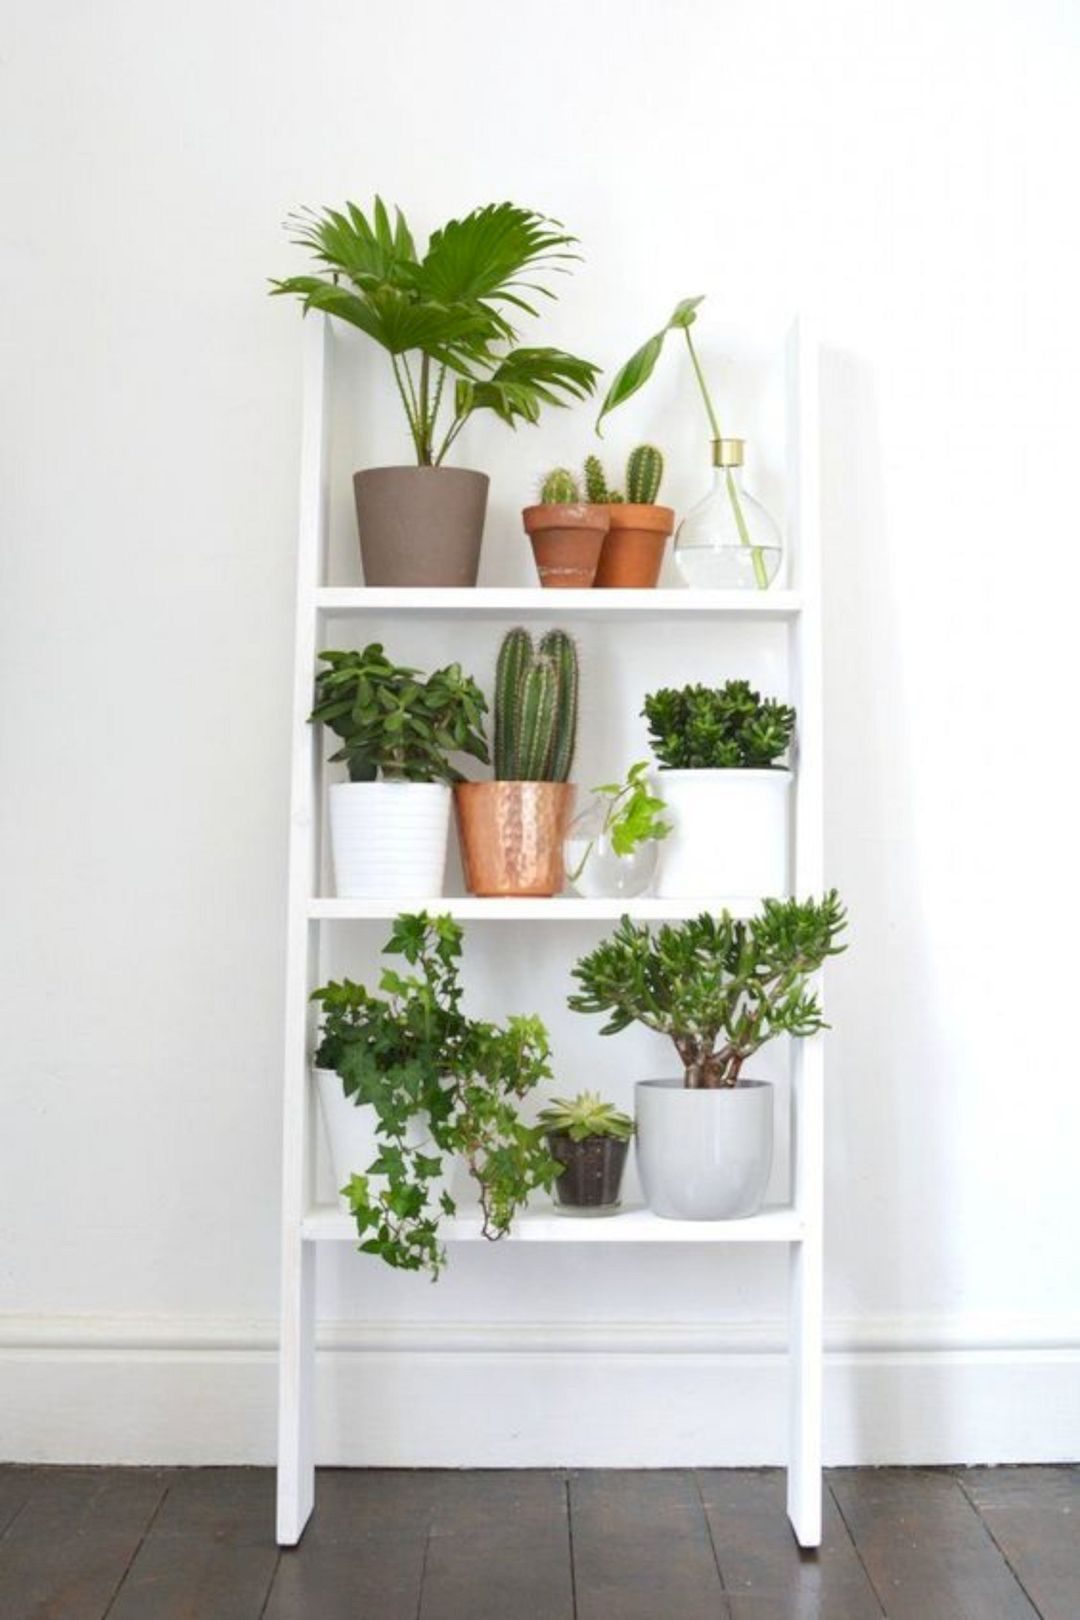 19 Unique Home Decor Ideas with Plants | Plants, Unique and ... on house crafts, house stars, house nature, house design, house mites, house flowers, house chemicals, house home, house rodents, house candy, house ferns, house family, house people, house decorations, house cars, house slugs, house fire, house plans, house gifts, house vines,